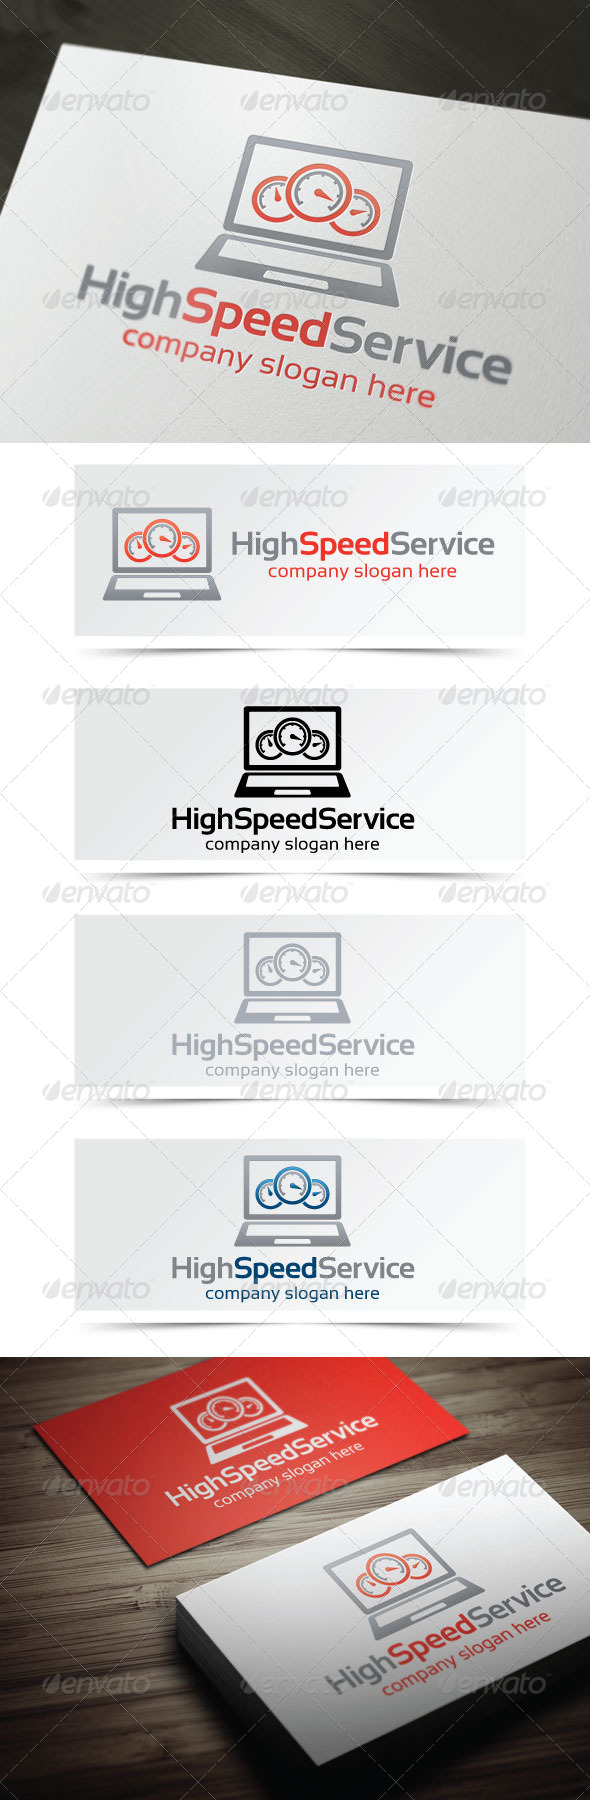 GraphicRiver High Speed Service 4654378